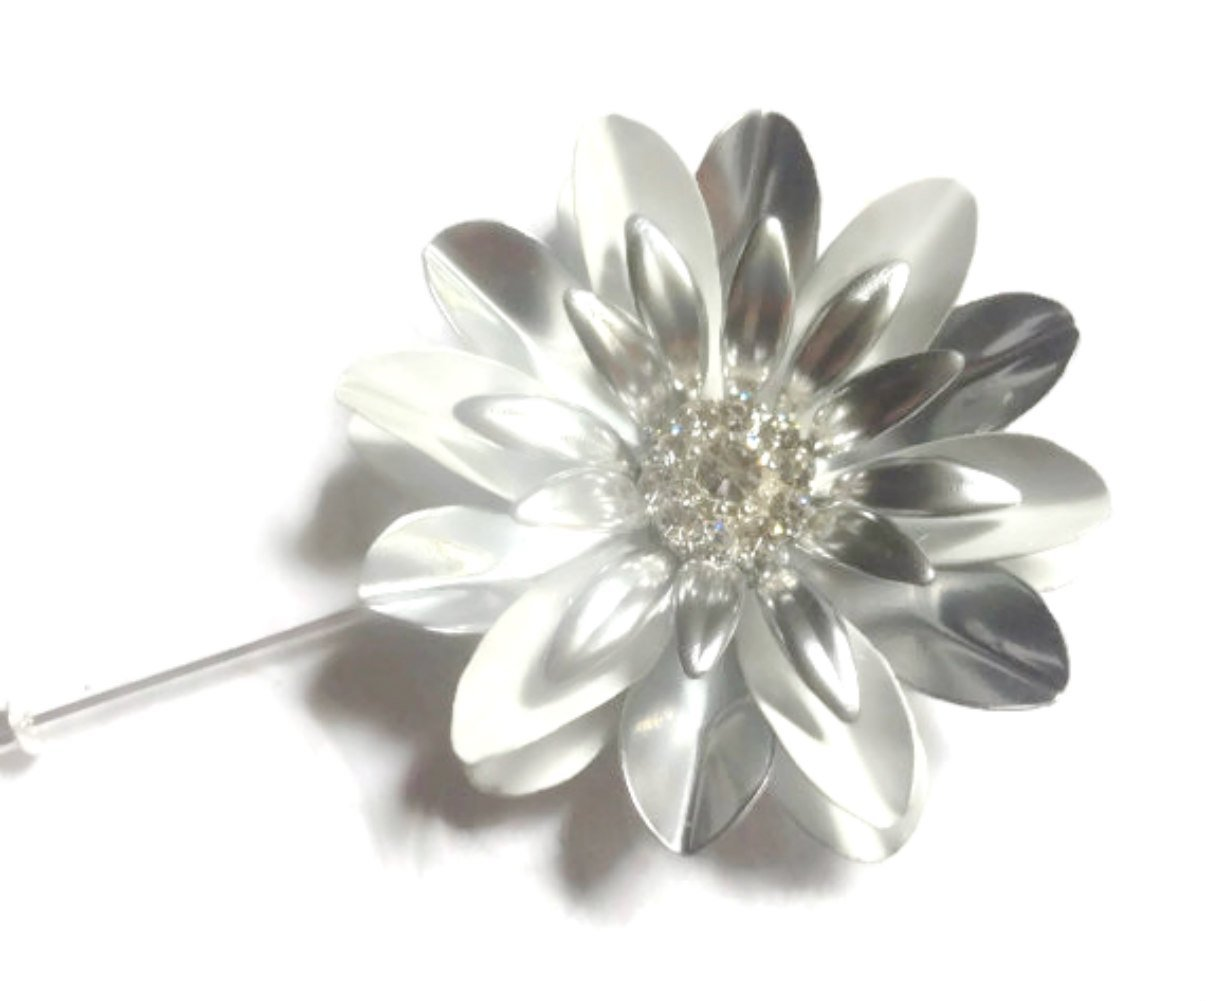 Large White and Silvertone Painted Metal Flower Lapel Pin Enamel Rhinestone Daisy